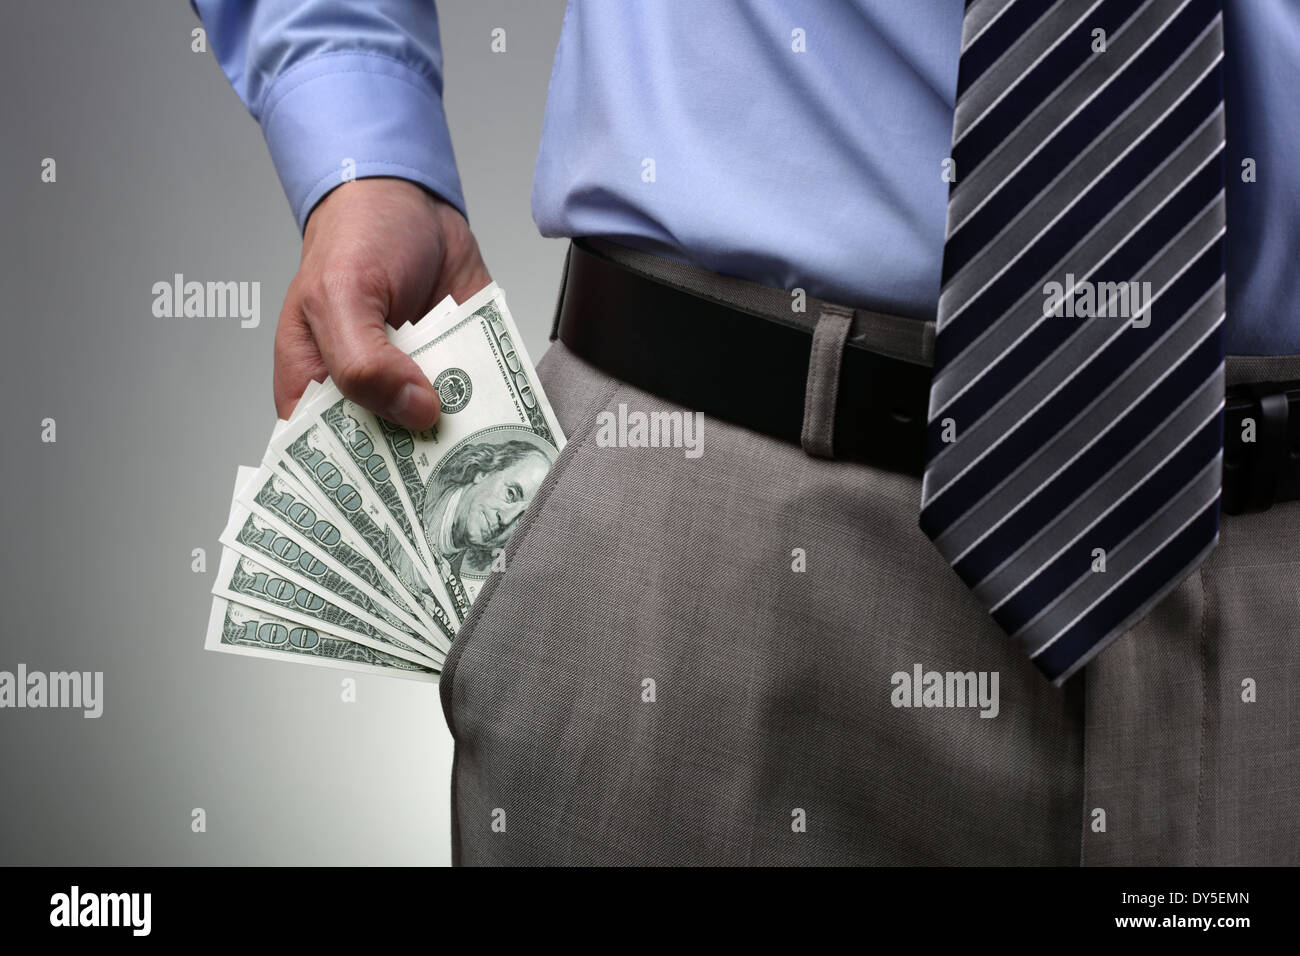 Business wealth - Stock Image